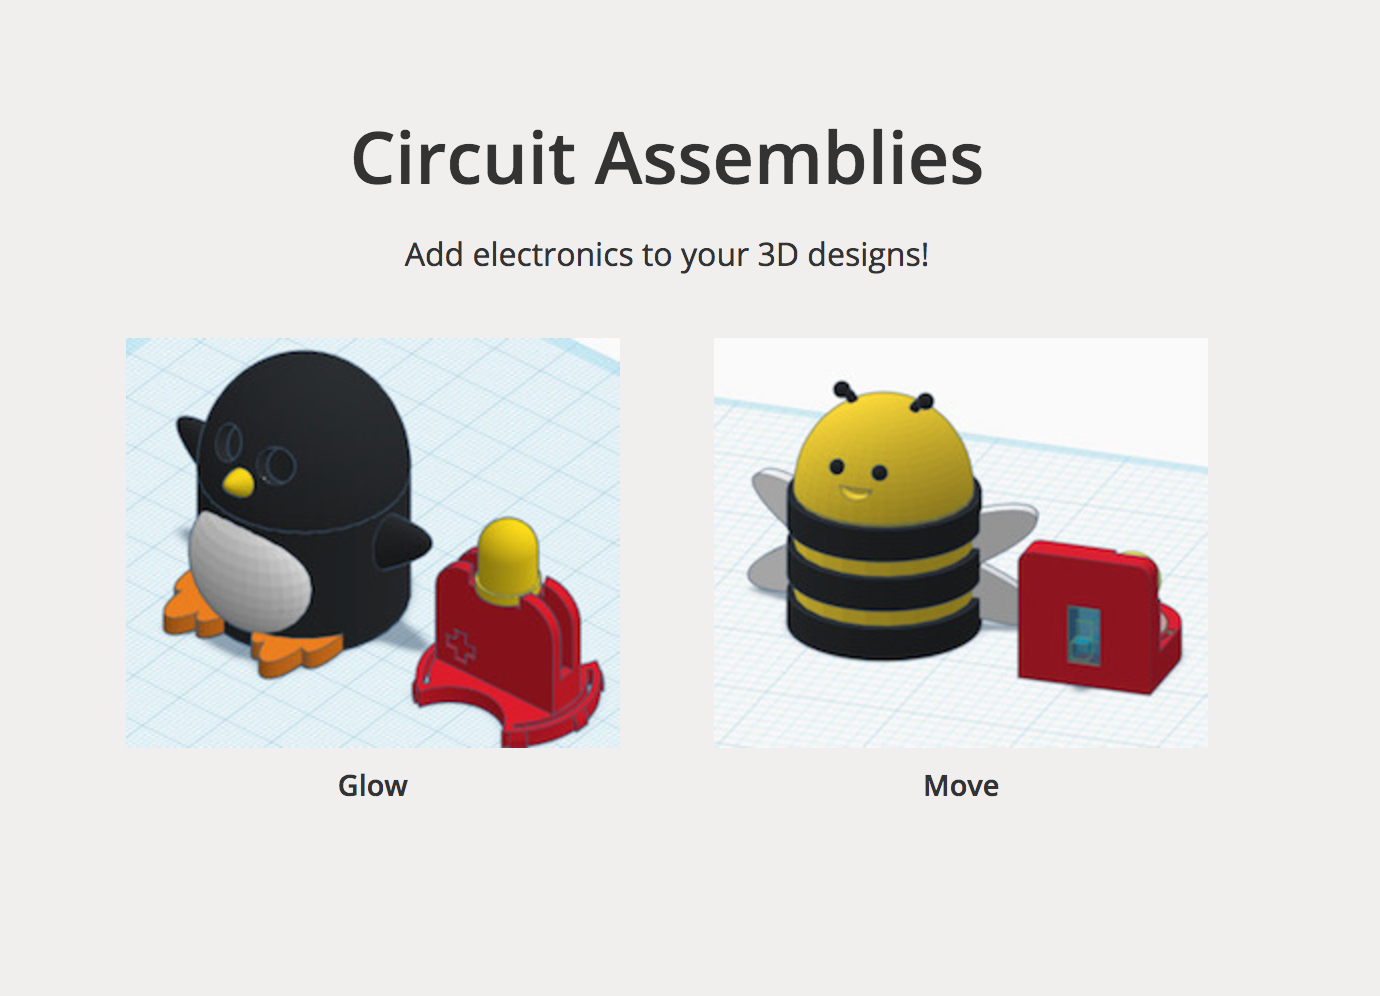 Designing Interactive 3d Printed Things With Tinkercad Circuit Vs Parallel For Kids Using The Above As An Assembly Lessons At Https Tinkercadcom Learn